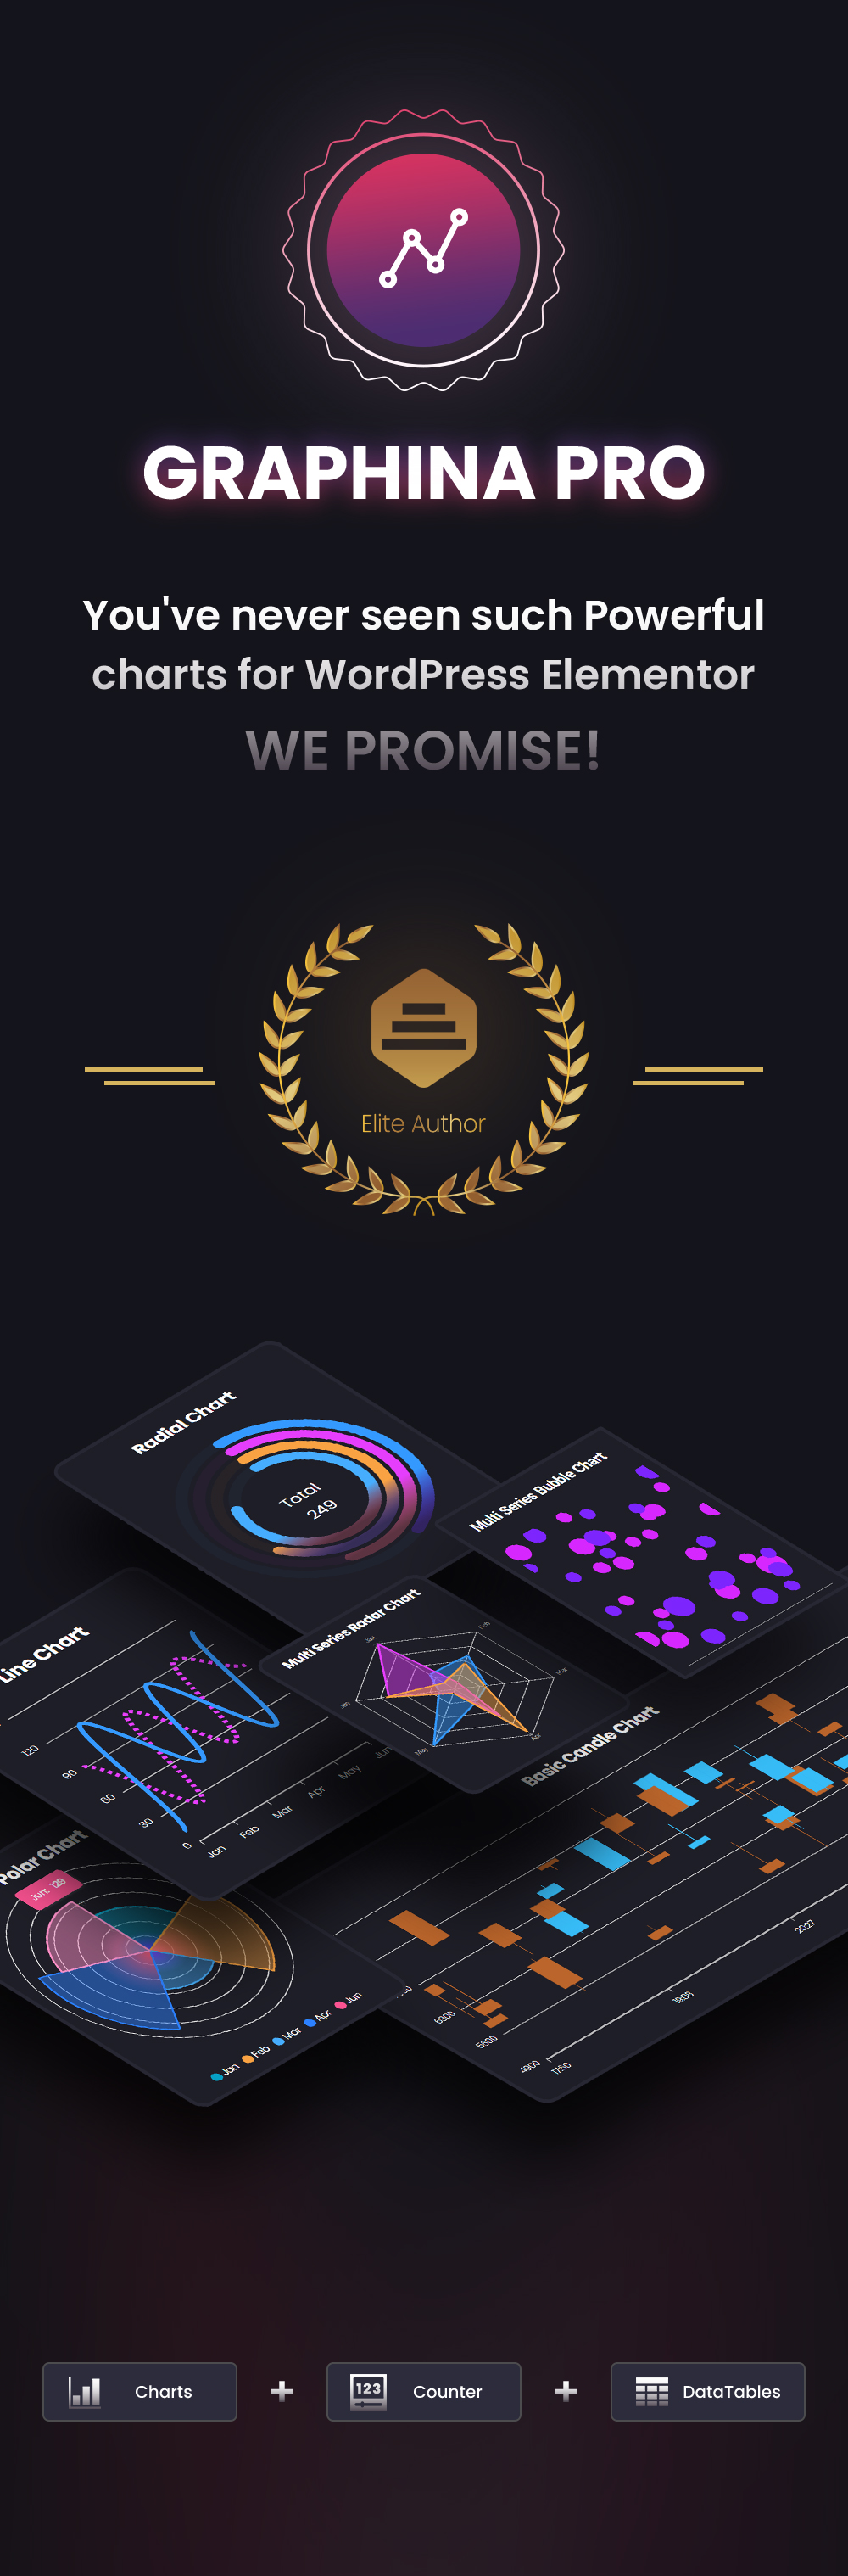 Tables and Charts WordPress plugin | Graphina Pro | Iqonic Design elementor dynamic charts graphs and datatables Graphina Pro banner